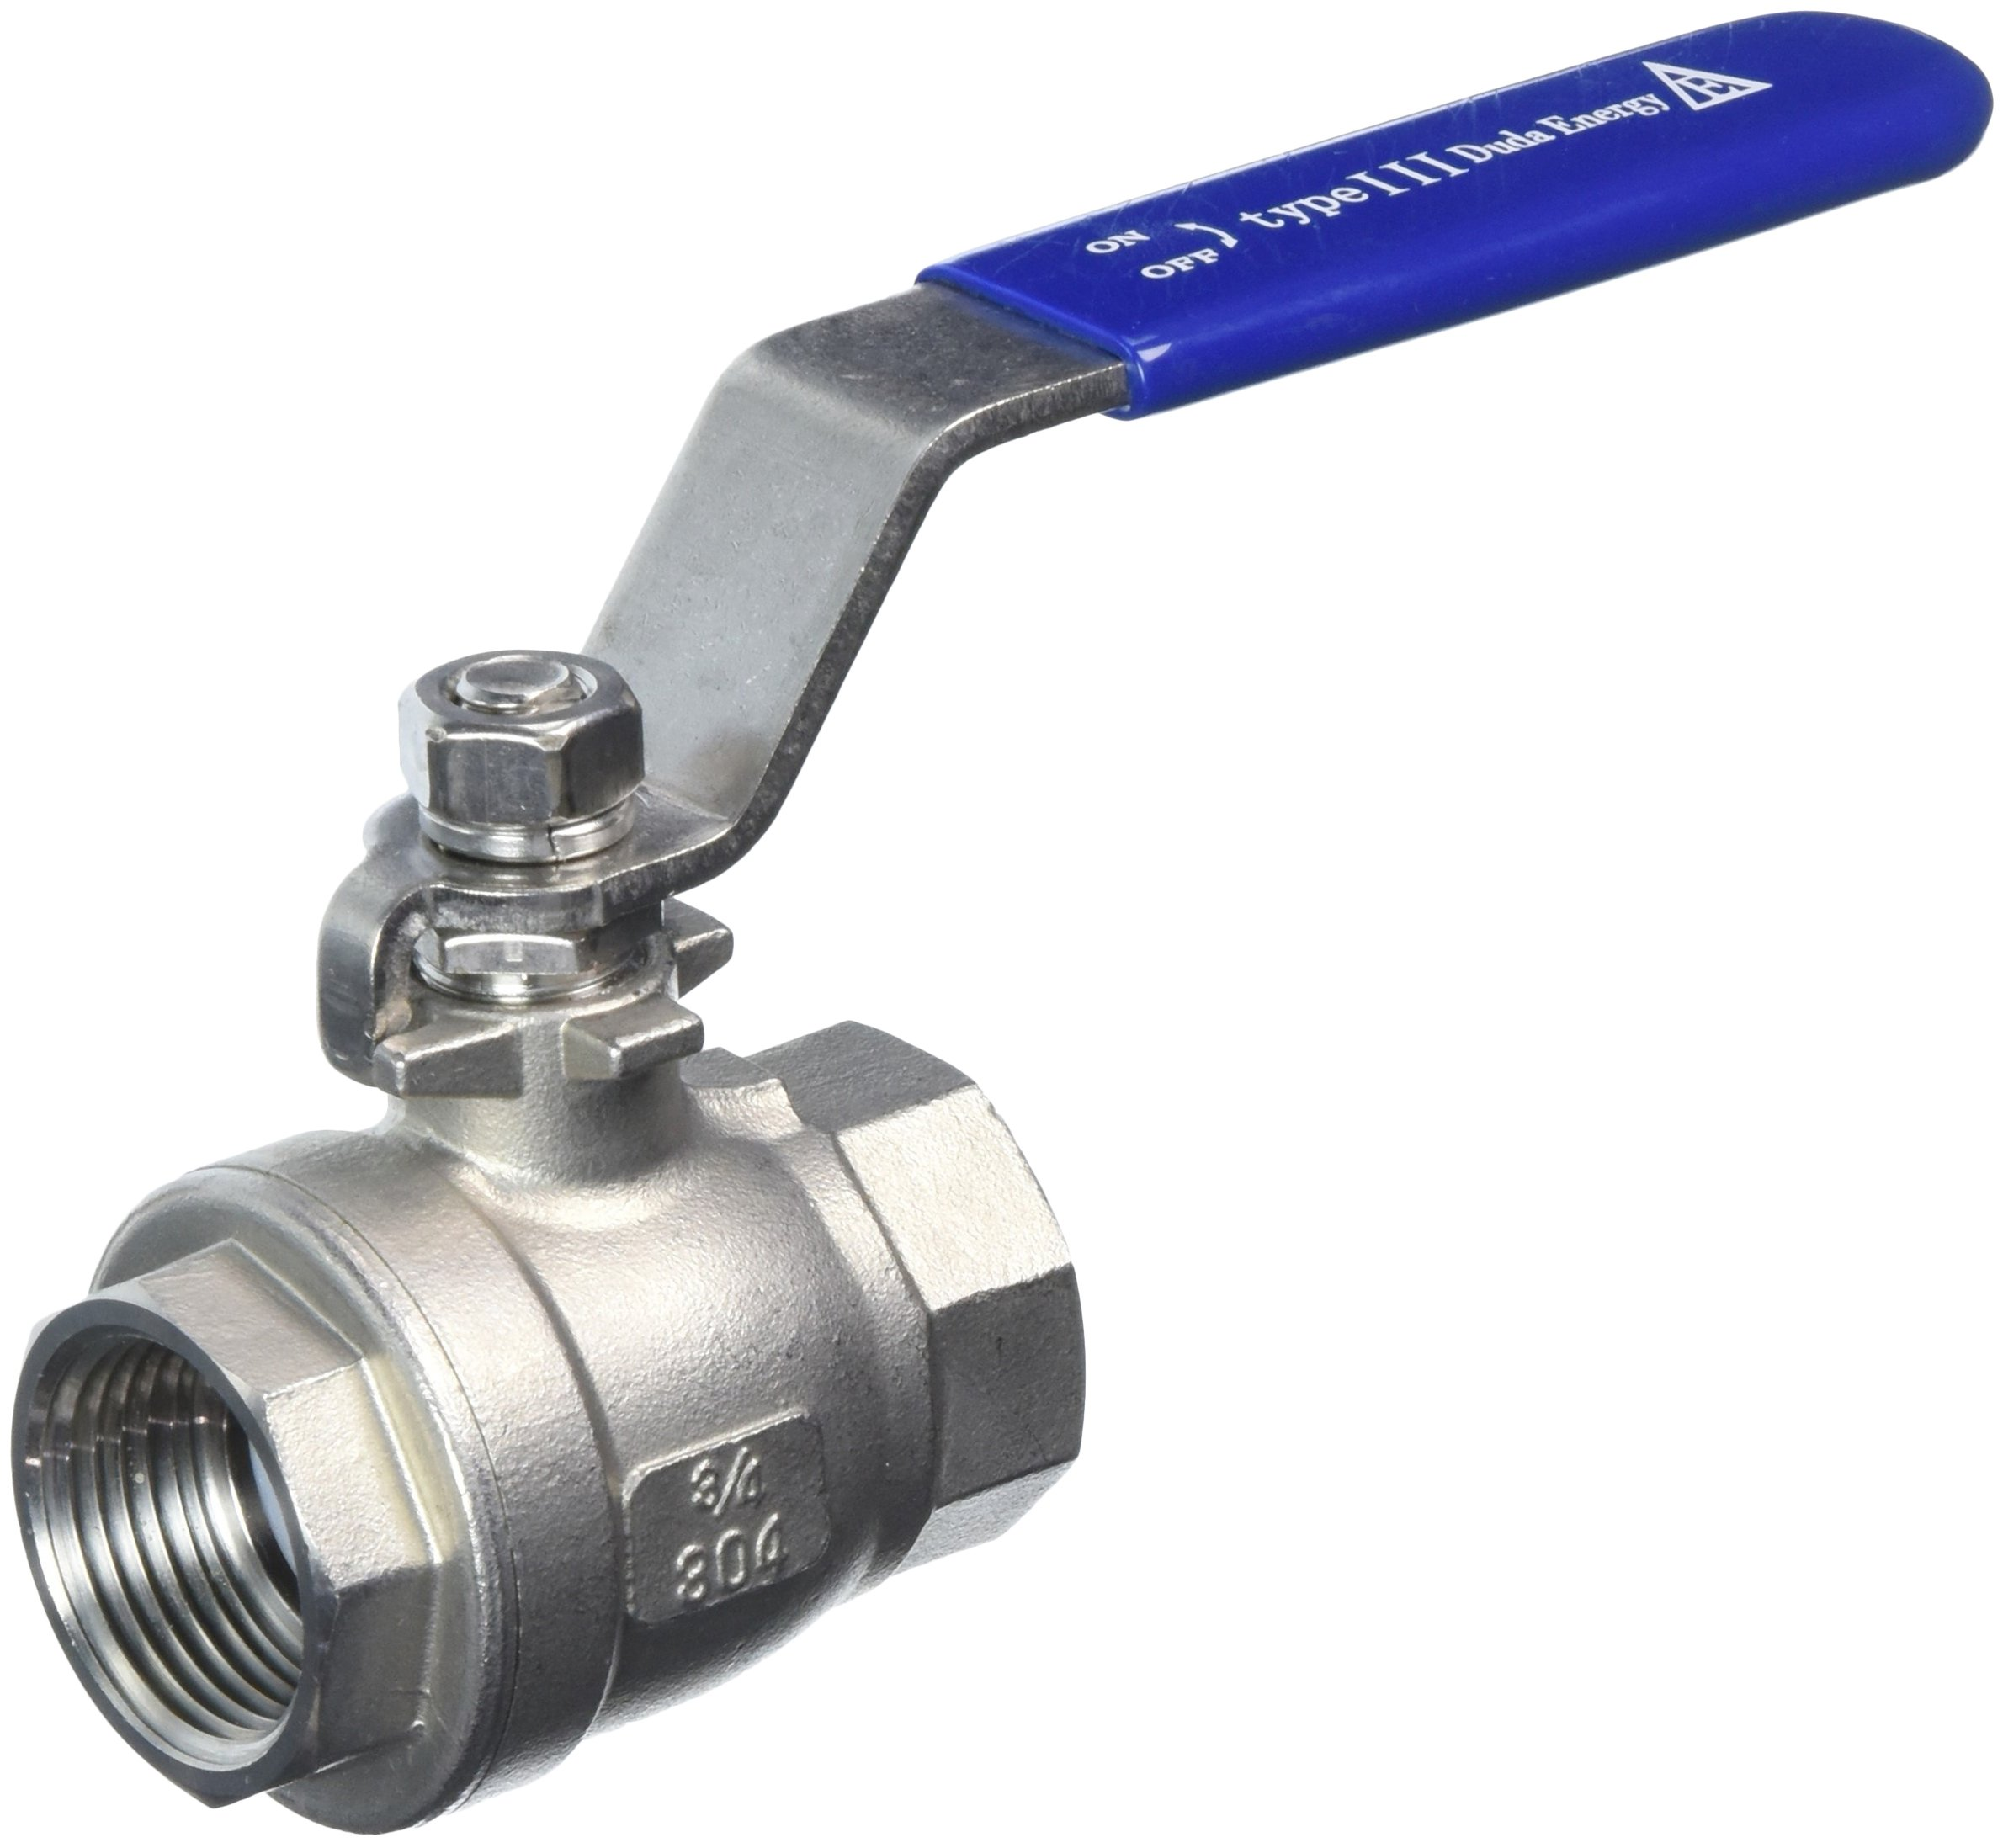 Duda Energy 2PCBV-WOG200-F075 Full Port Ball Valve, 2 Piece, 3/4'' NPT, 304 Stainless Steel with Blue Vinyl Handle.75''